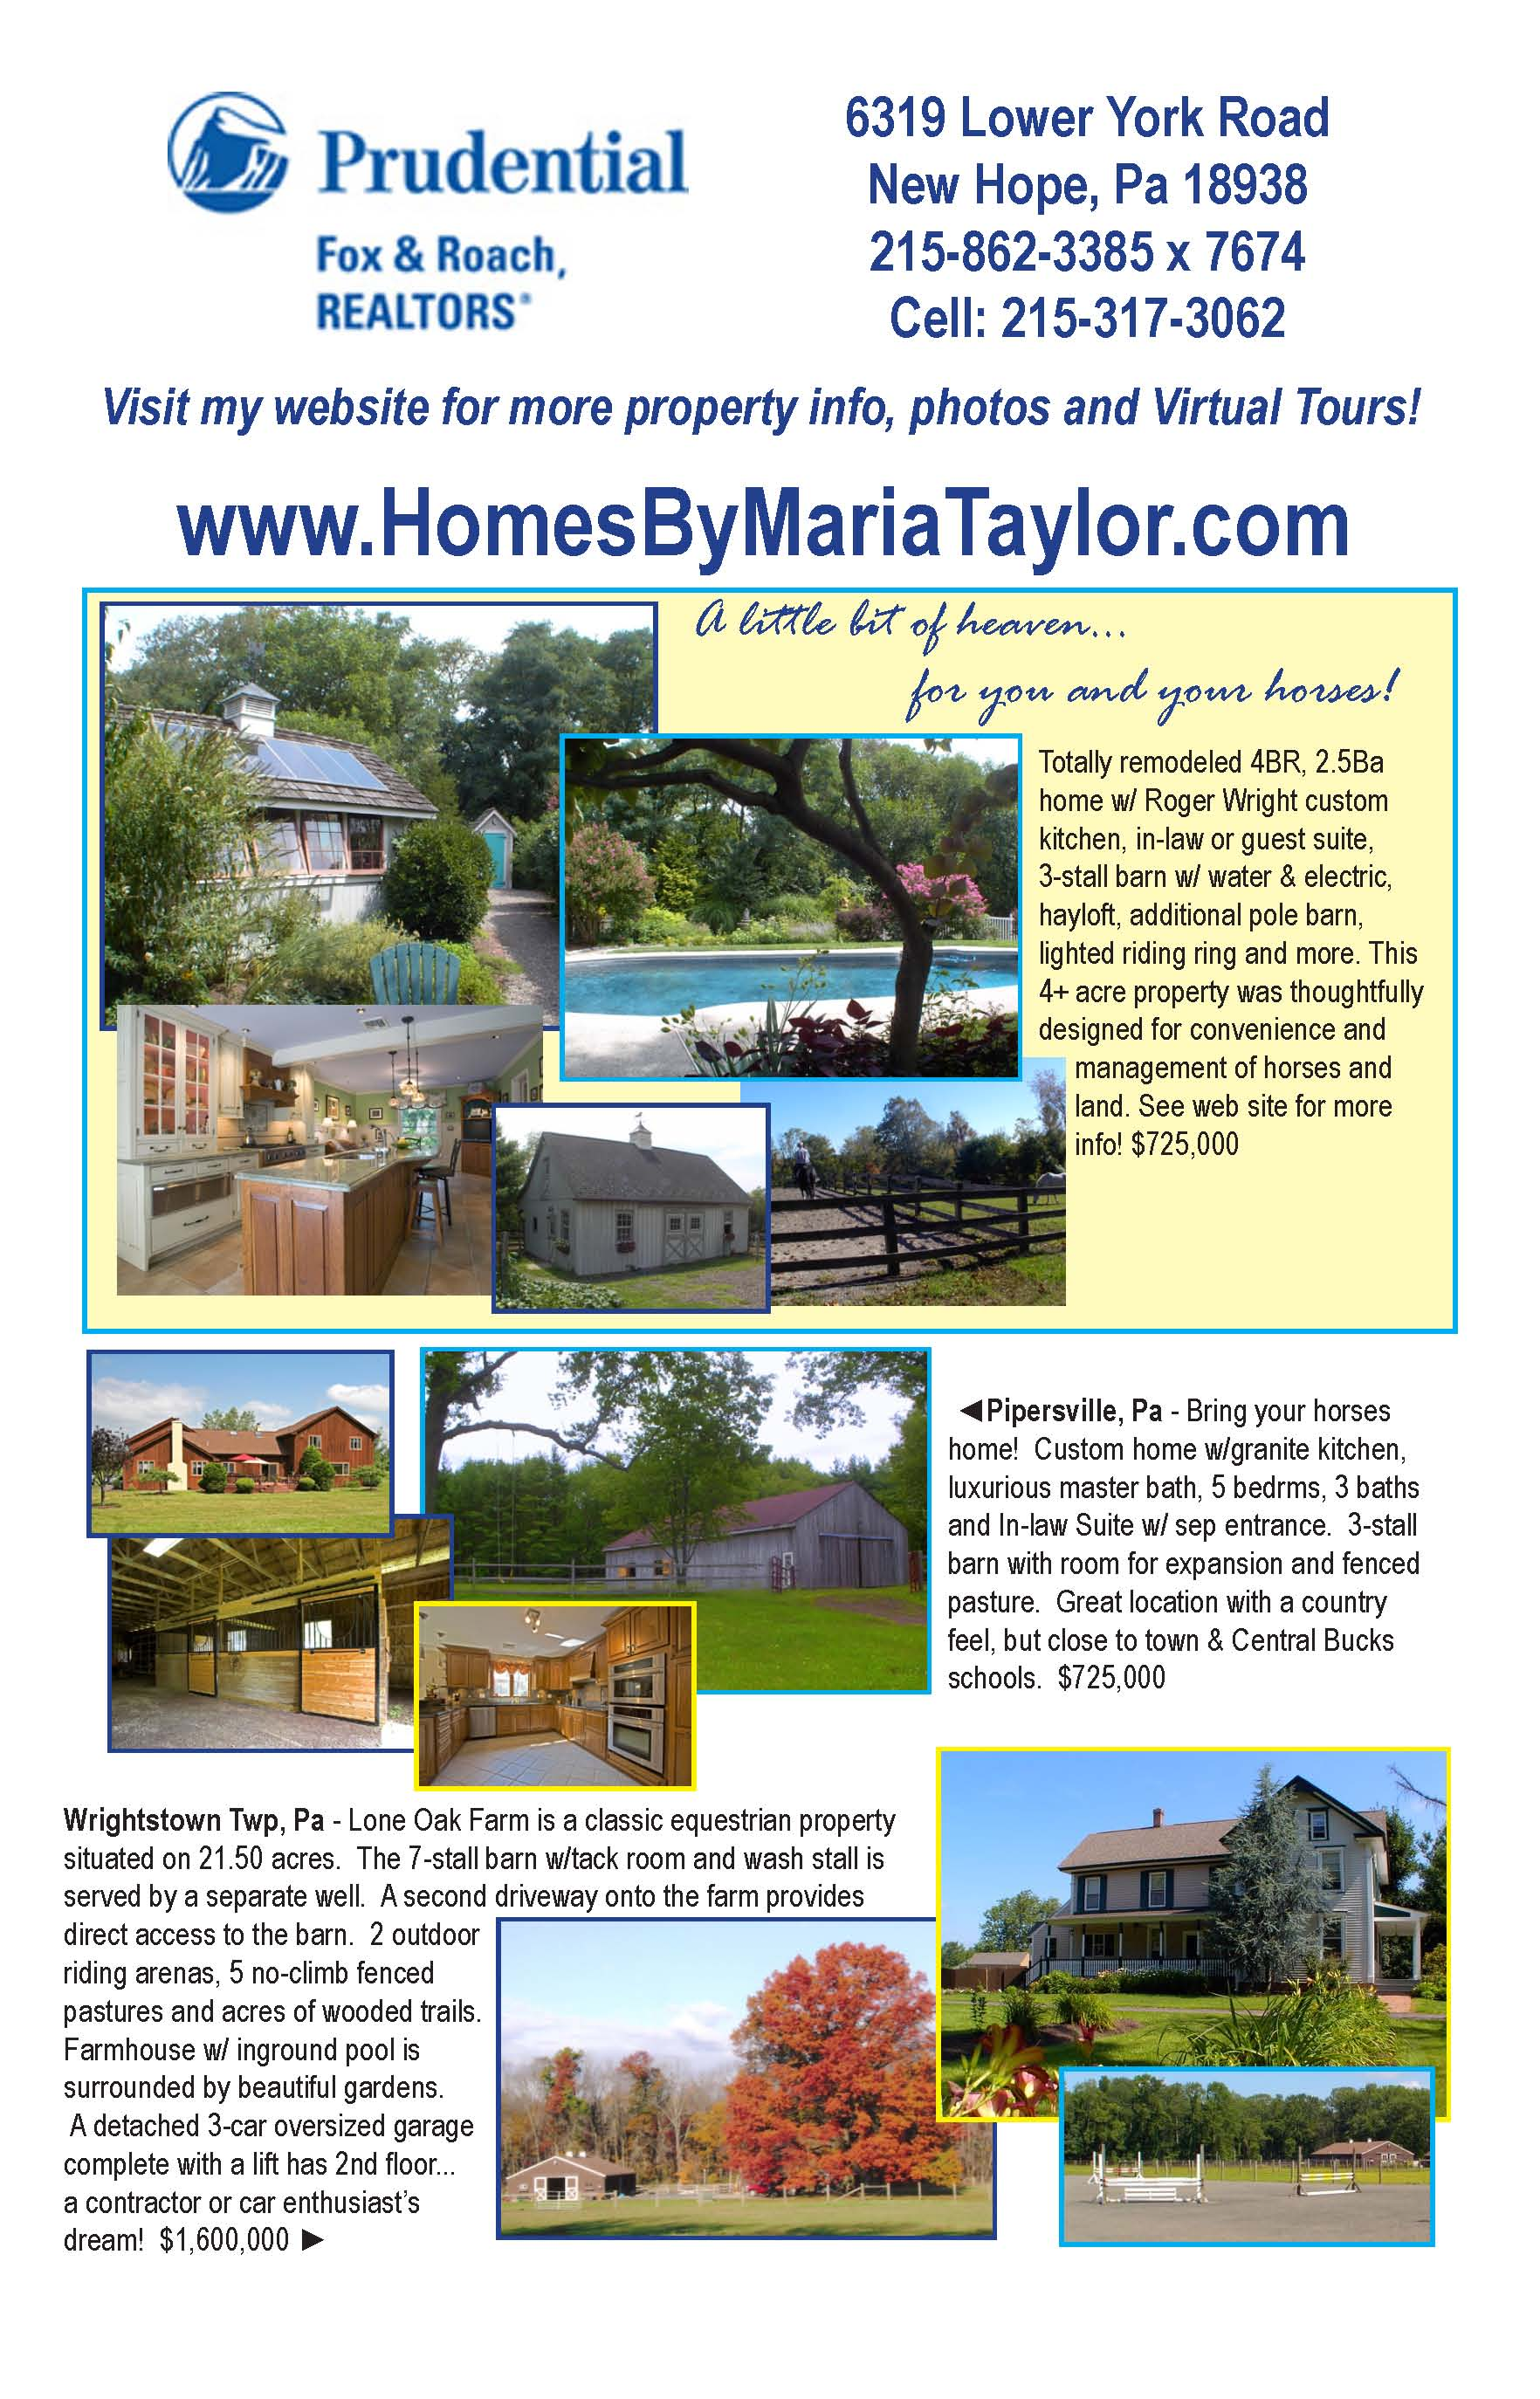 Homes By Maria Taylor